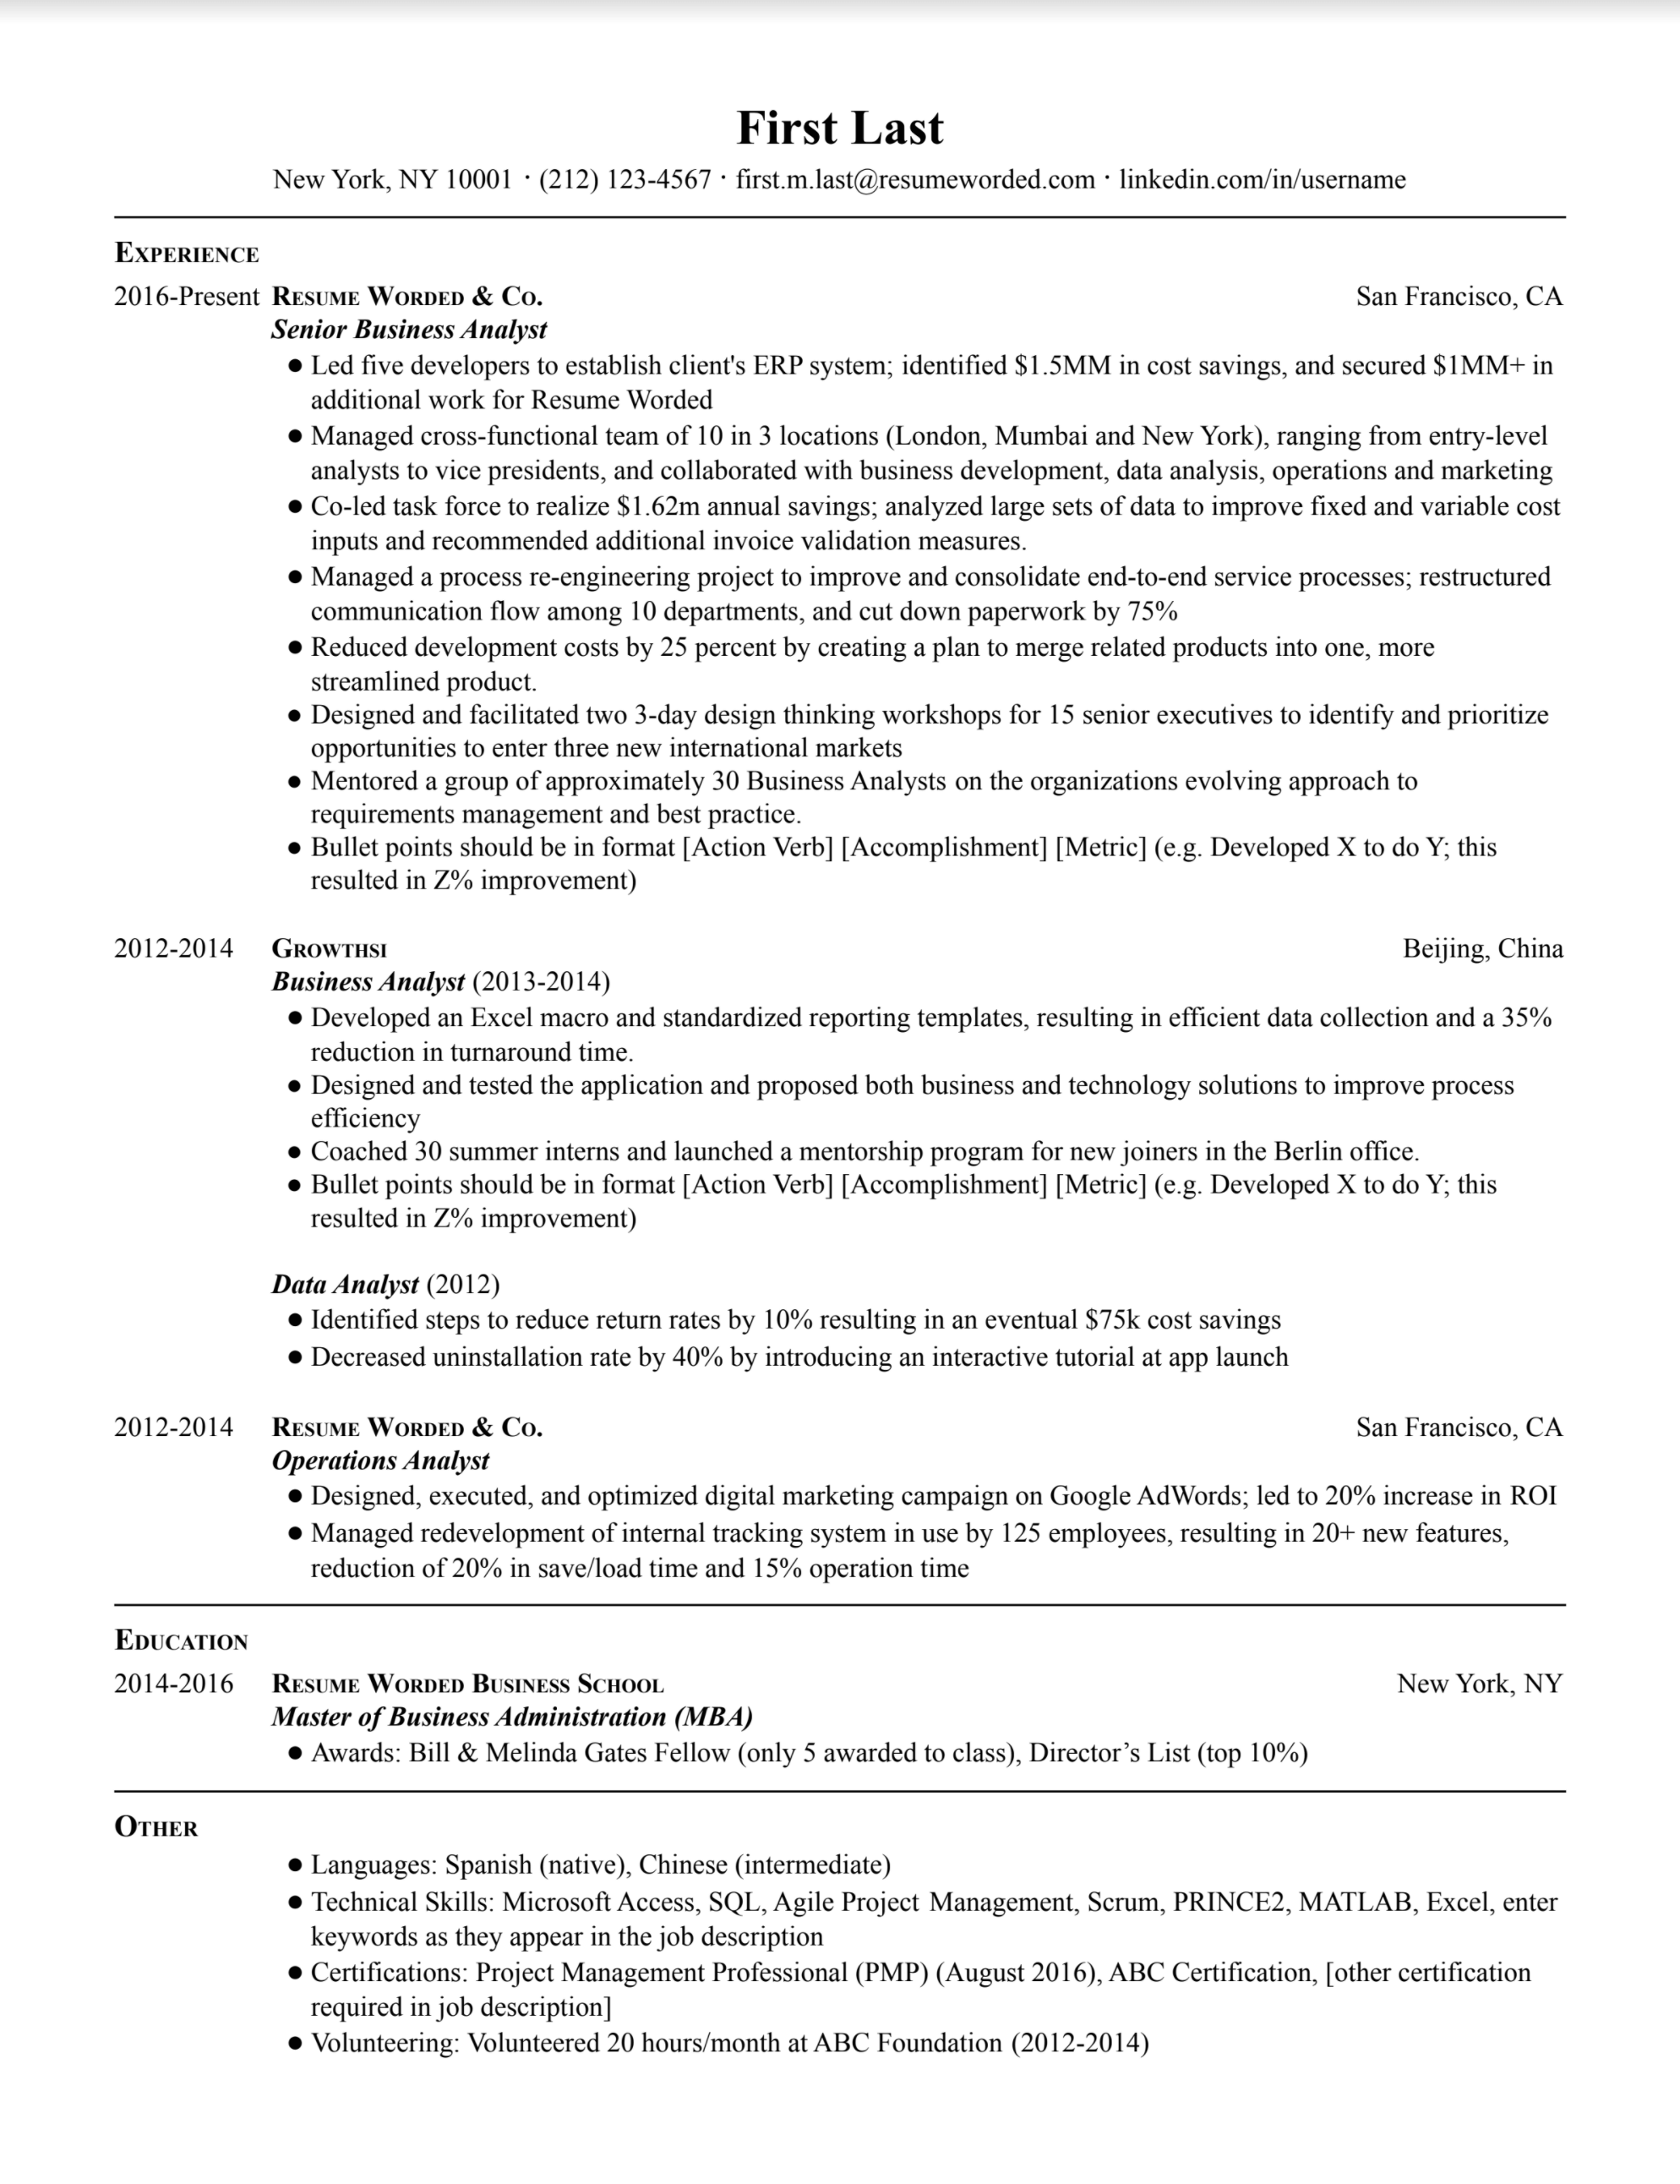 Senior business analyst resume with detailed work experience, bullet point accomplishments, and promotion